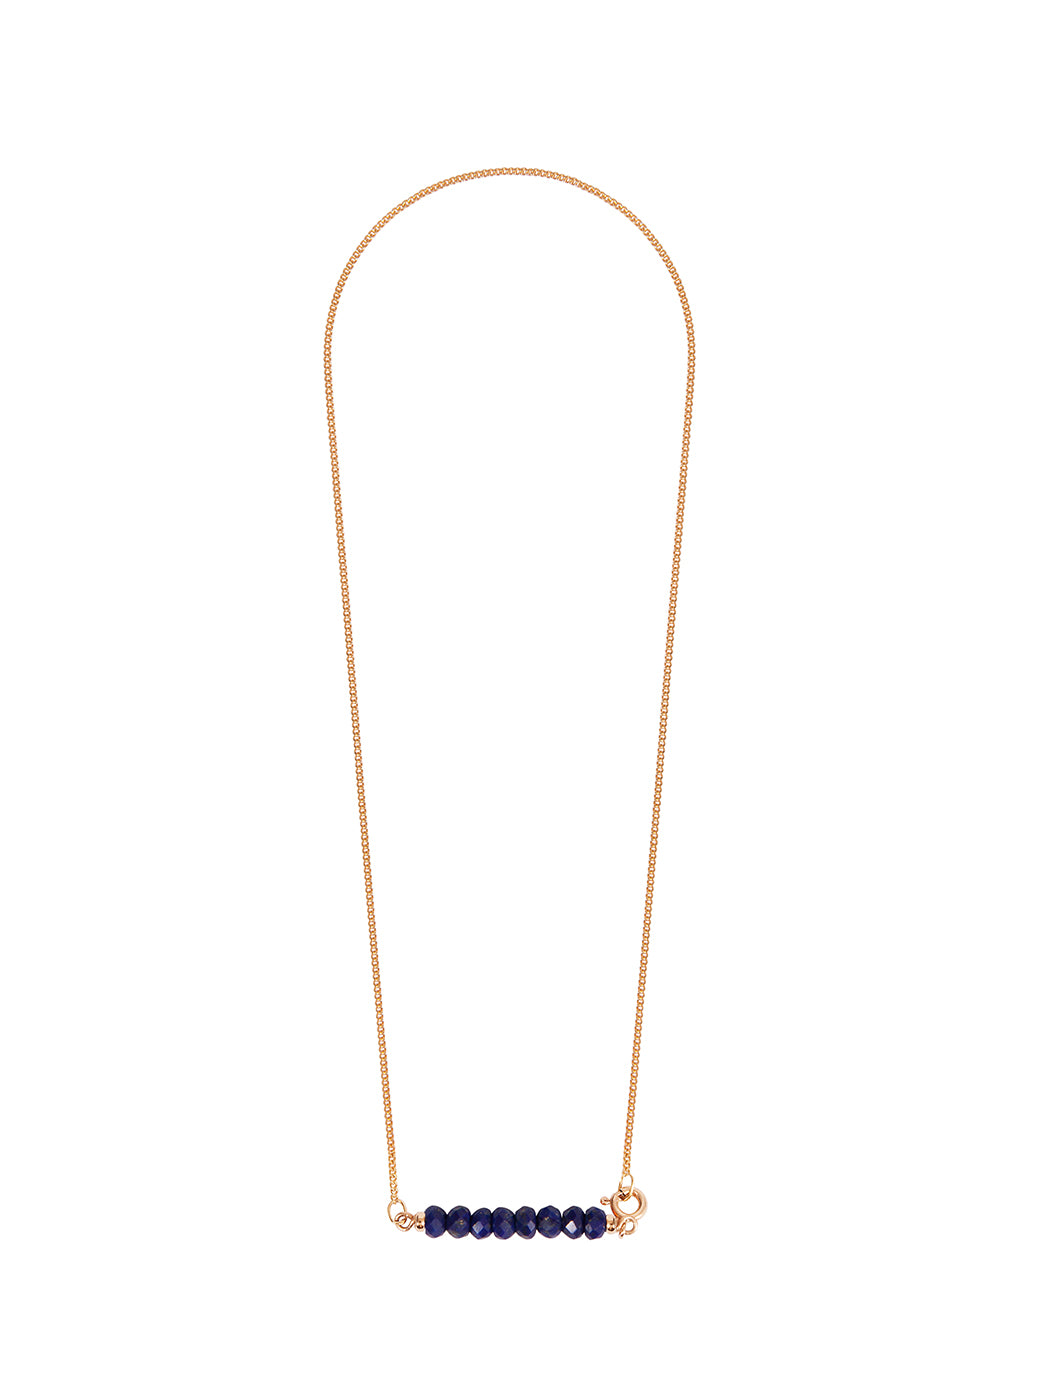 Fiorina Jewellery Gold Friendship Necklace Lapis faceted